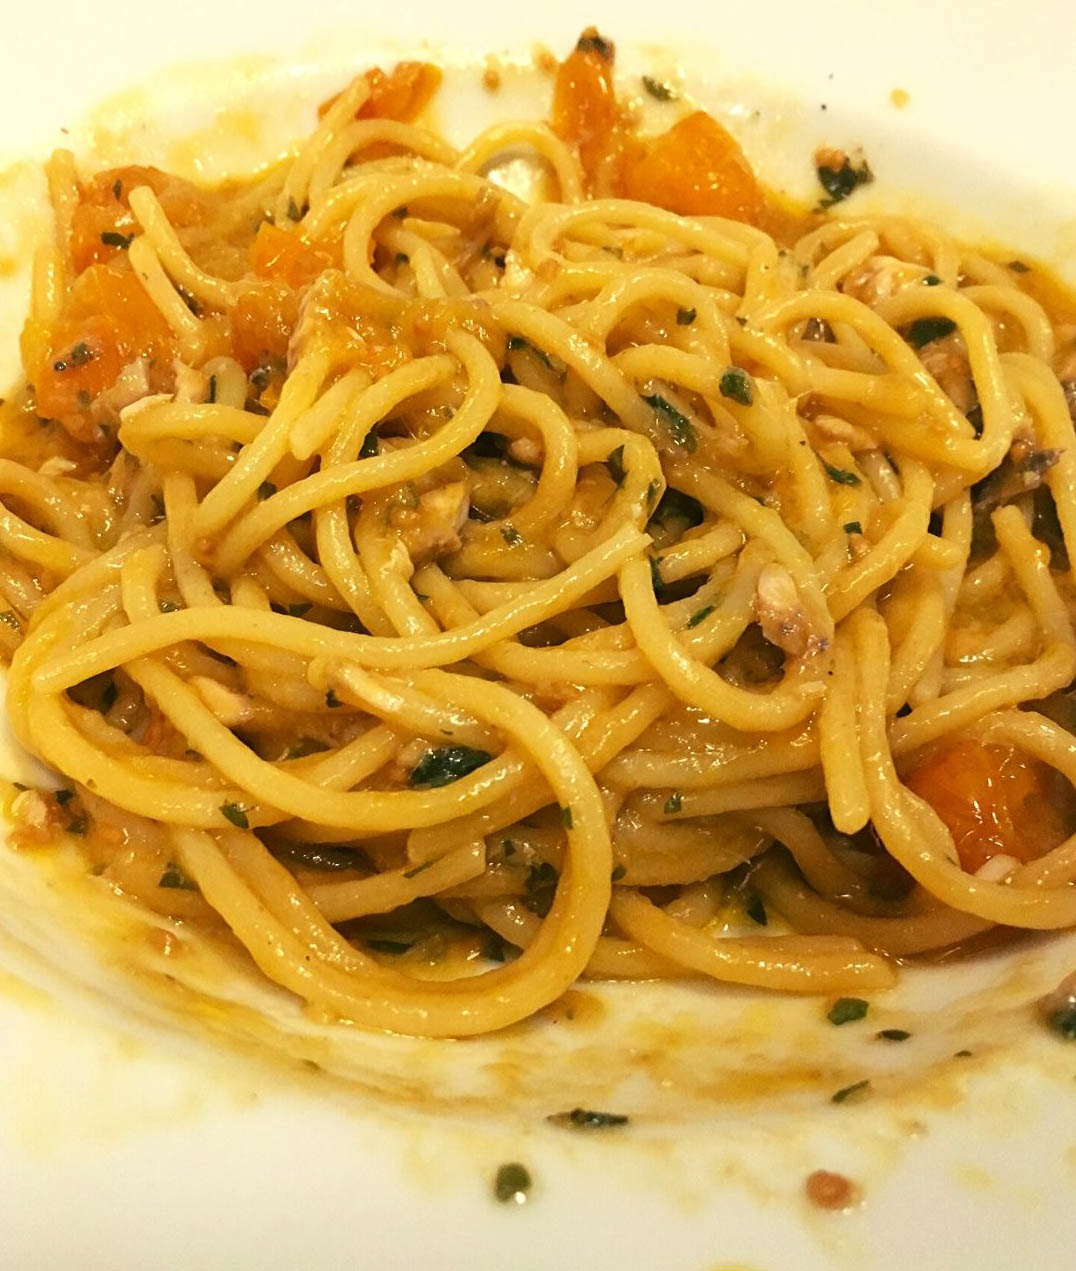 Insanely Delicious Food To Eat In Naples- Neapolitan pasta